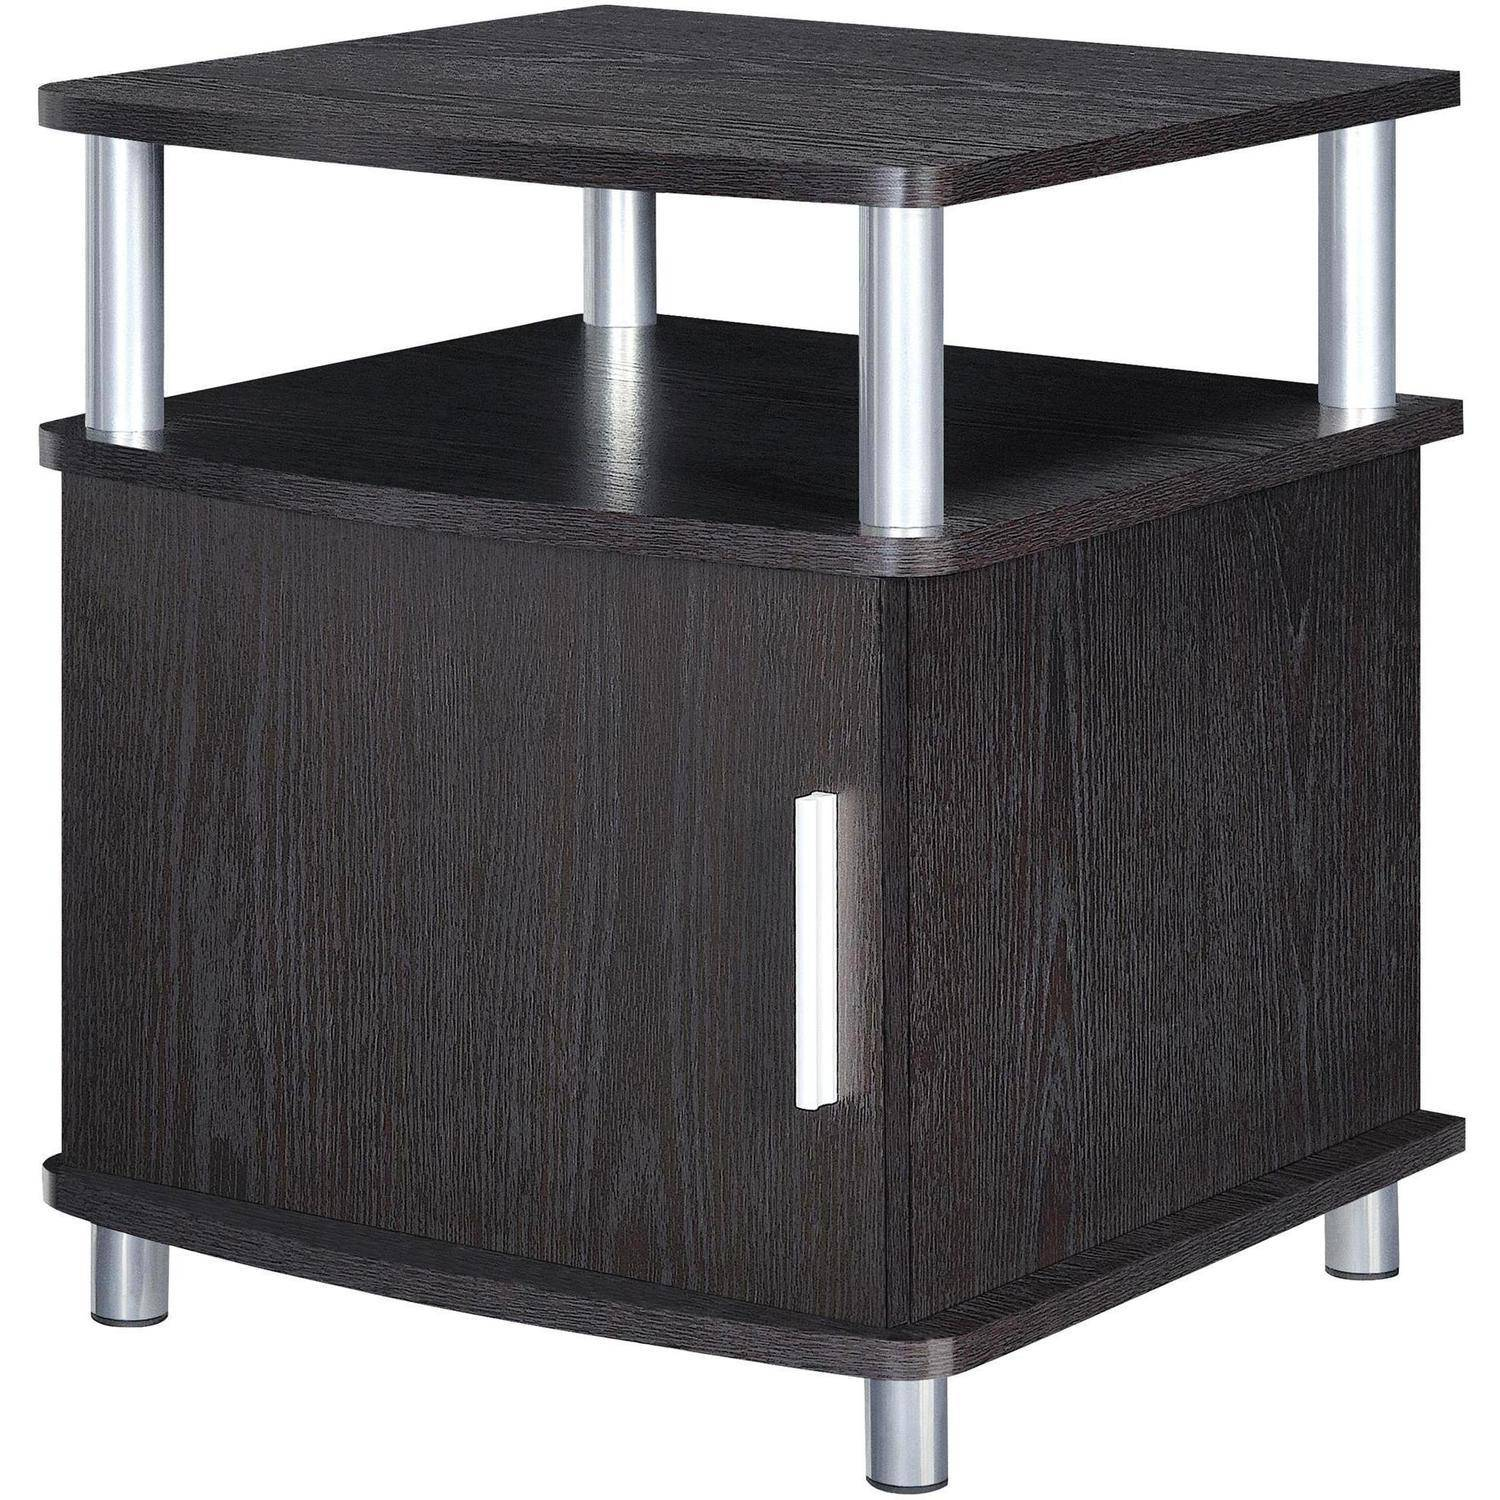 storage end tables for living room. Ameriwood Home Carson End Table with Storage  Espresso Silver Walmart com